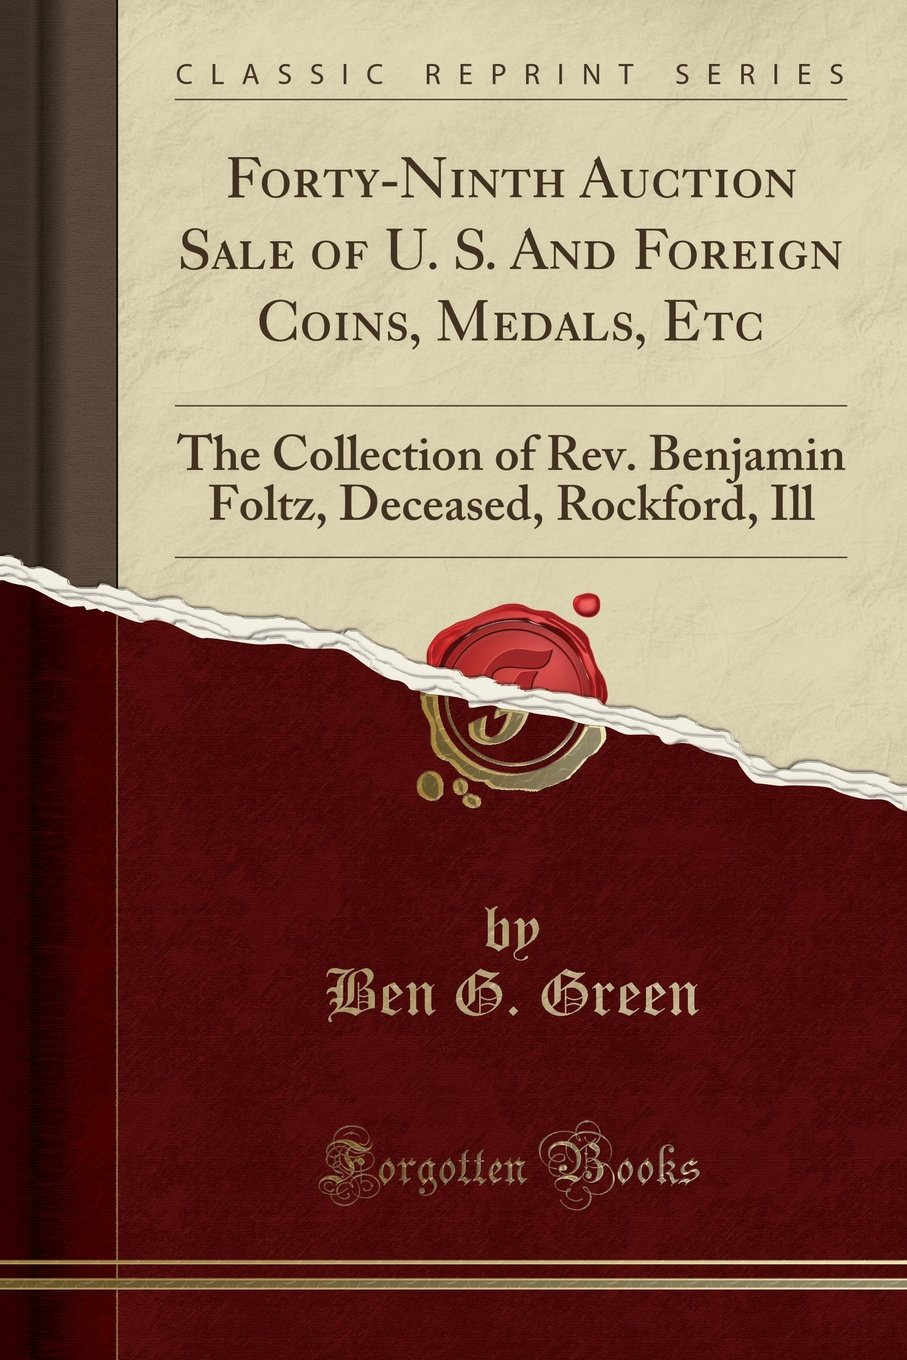 Download Forty-Ninth Auction Sale of U. S. And Foreign Coins, Medals, Etc: The Collection of Rev. Benjamin Foltz, Deceased, Rockford, Ill (Classic Reprint) ebook